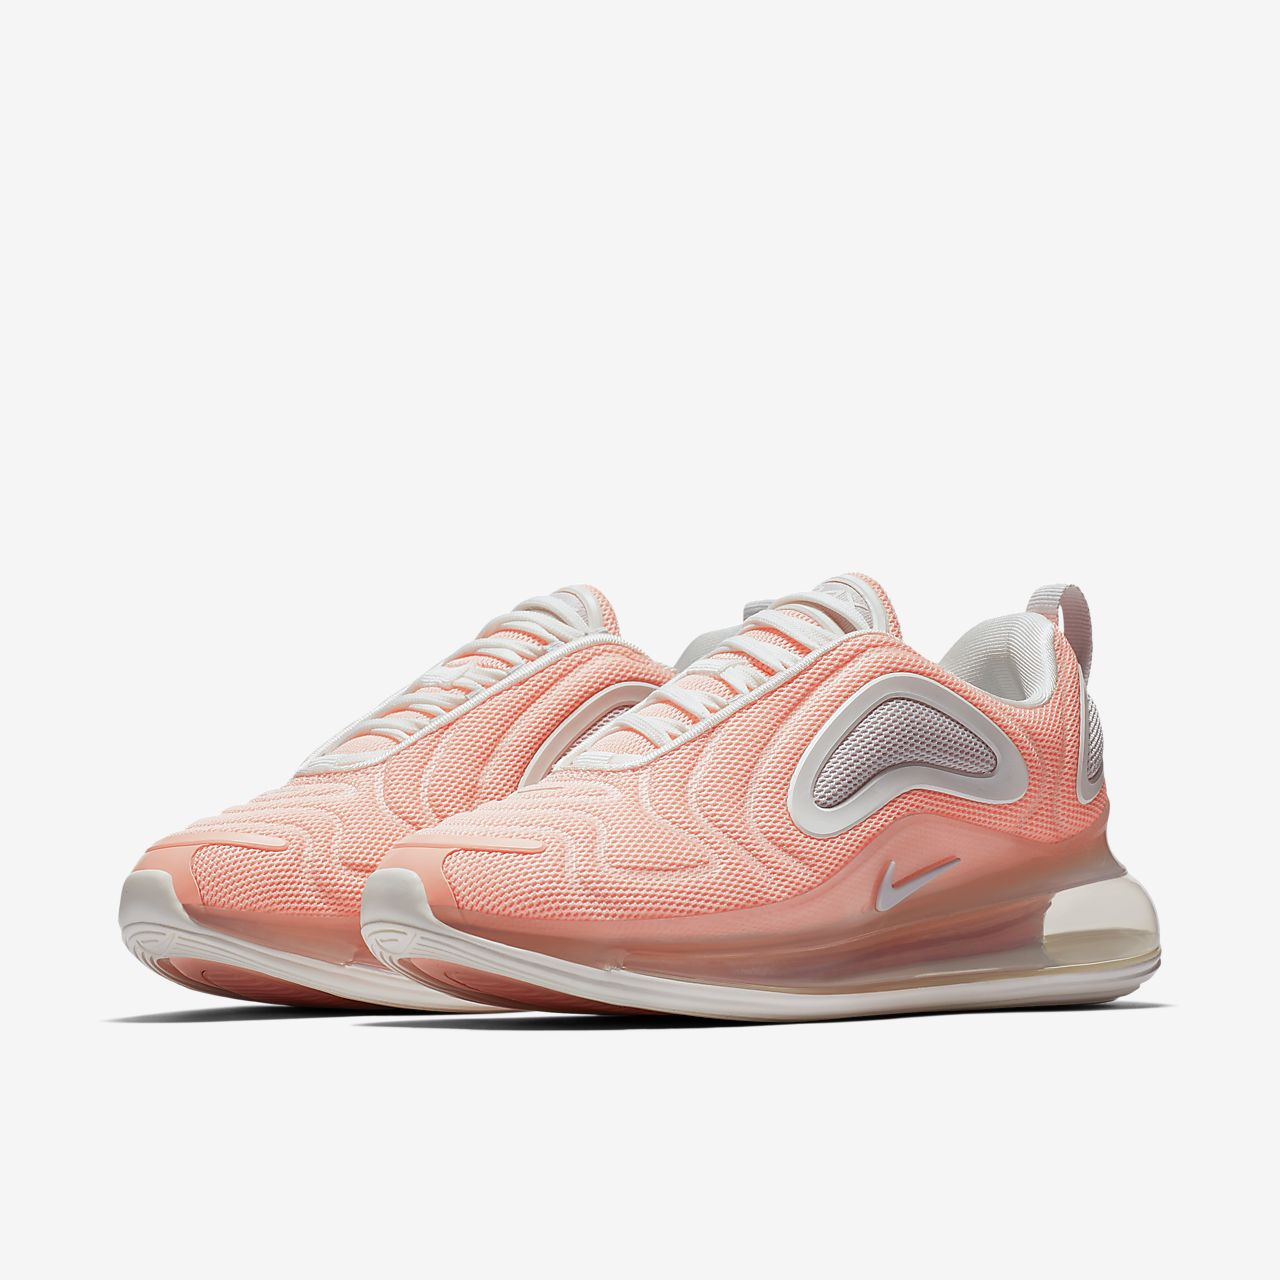 Clearing Promotions Stioll Nike Air Max 90 EZ Koralle